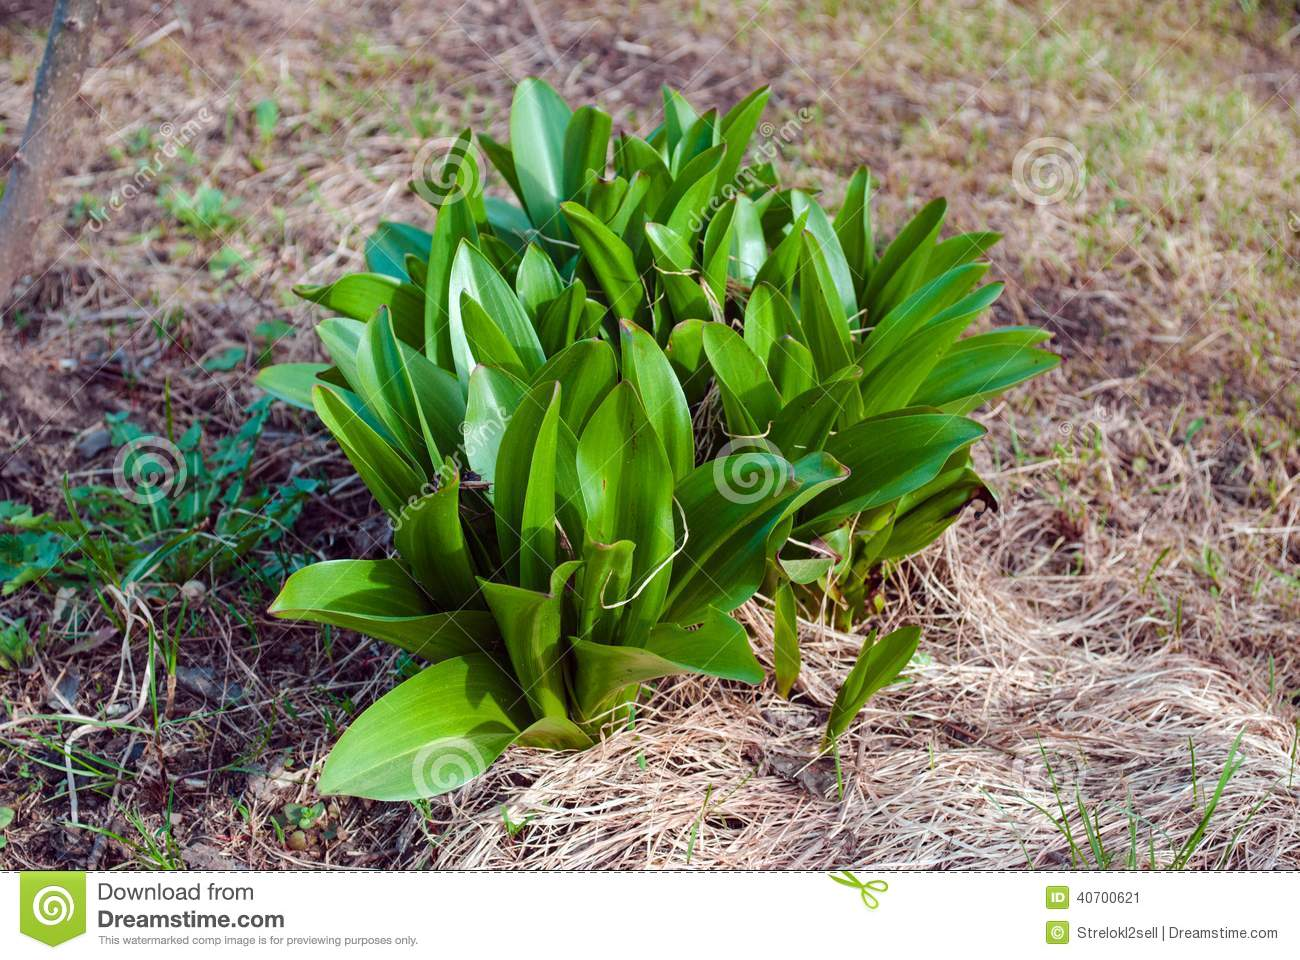 lily of the valley stock image image of green backgrounds 40700621